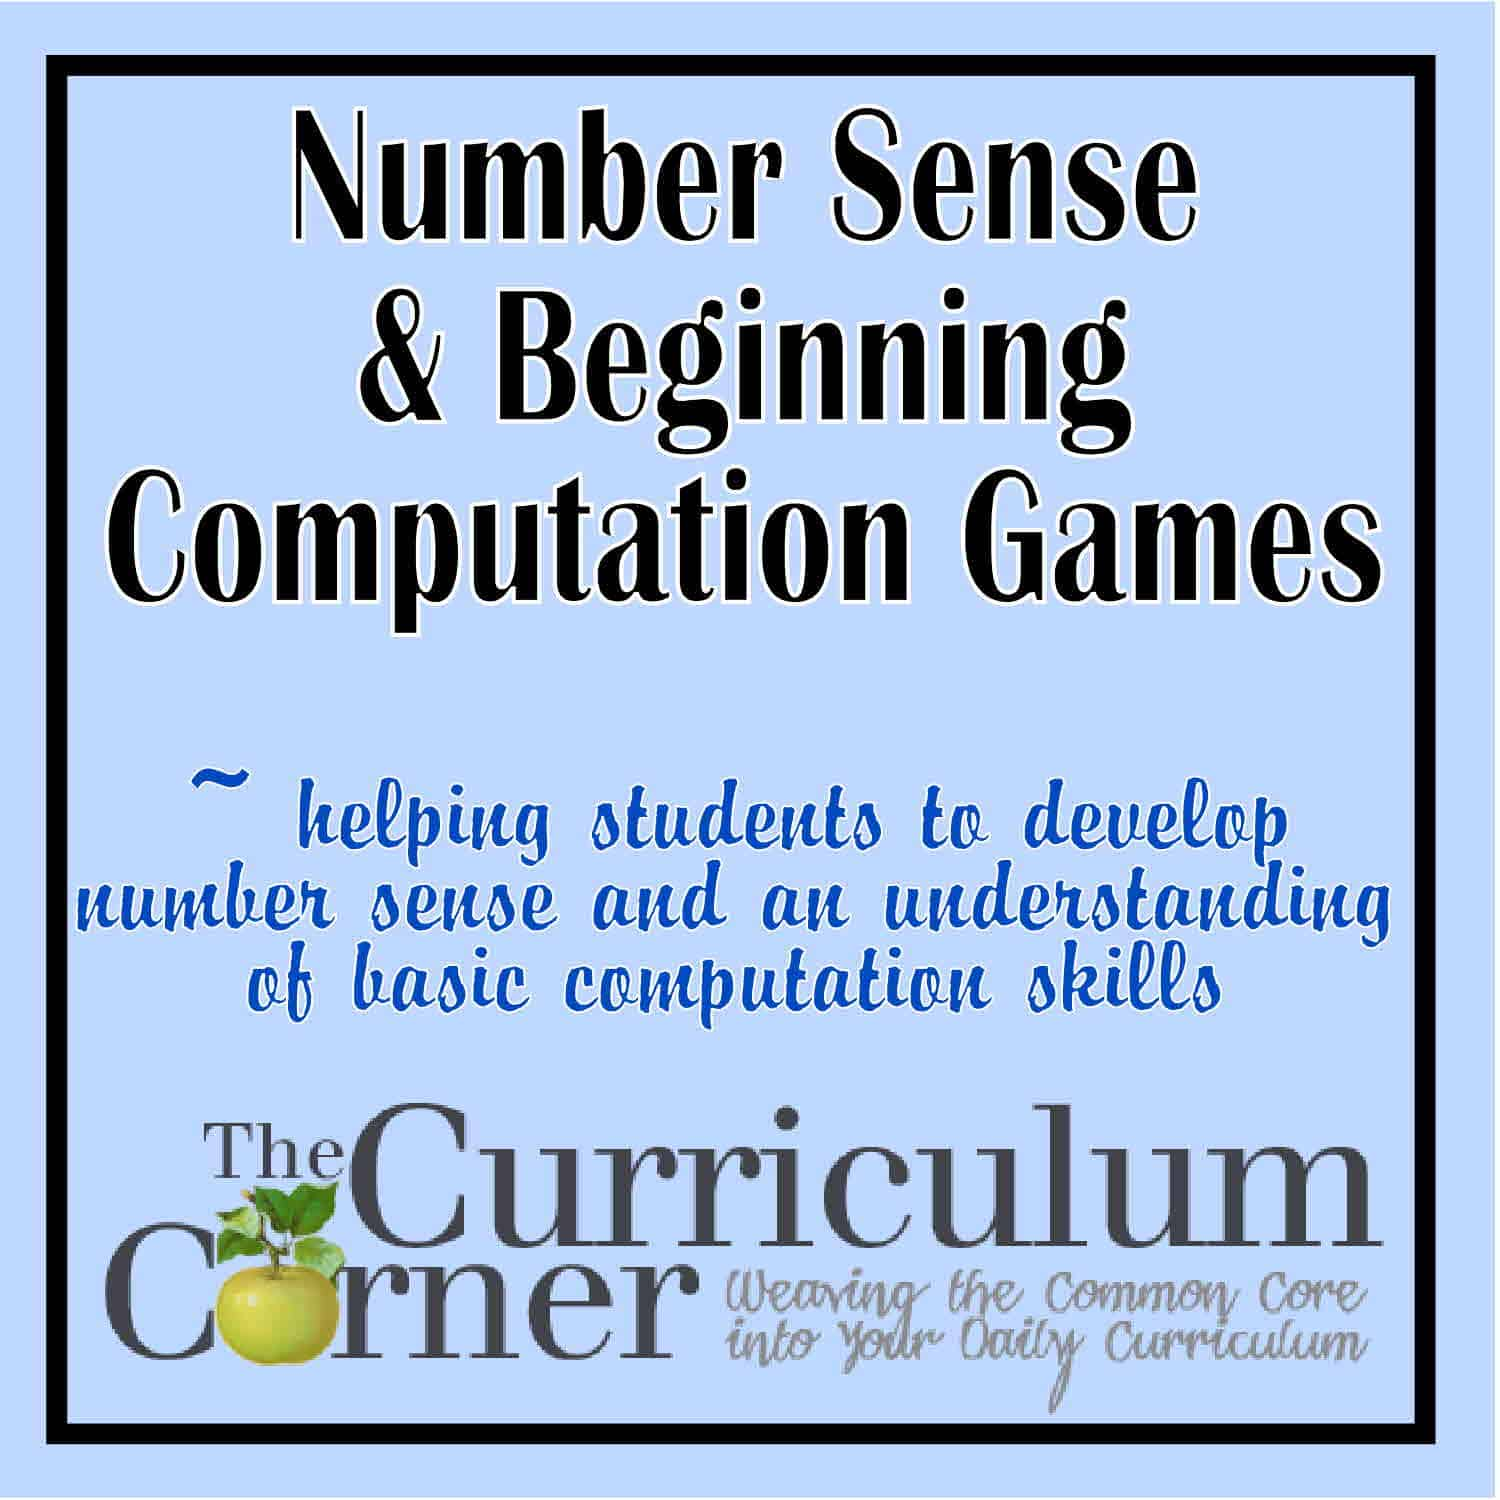 Games for Number Sense & Beginning Computation